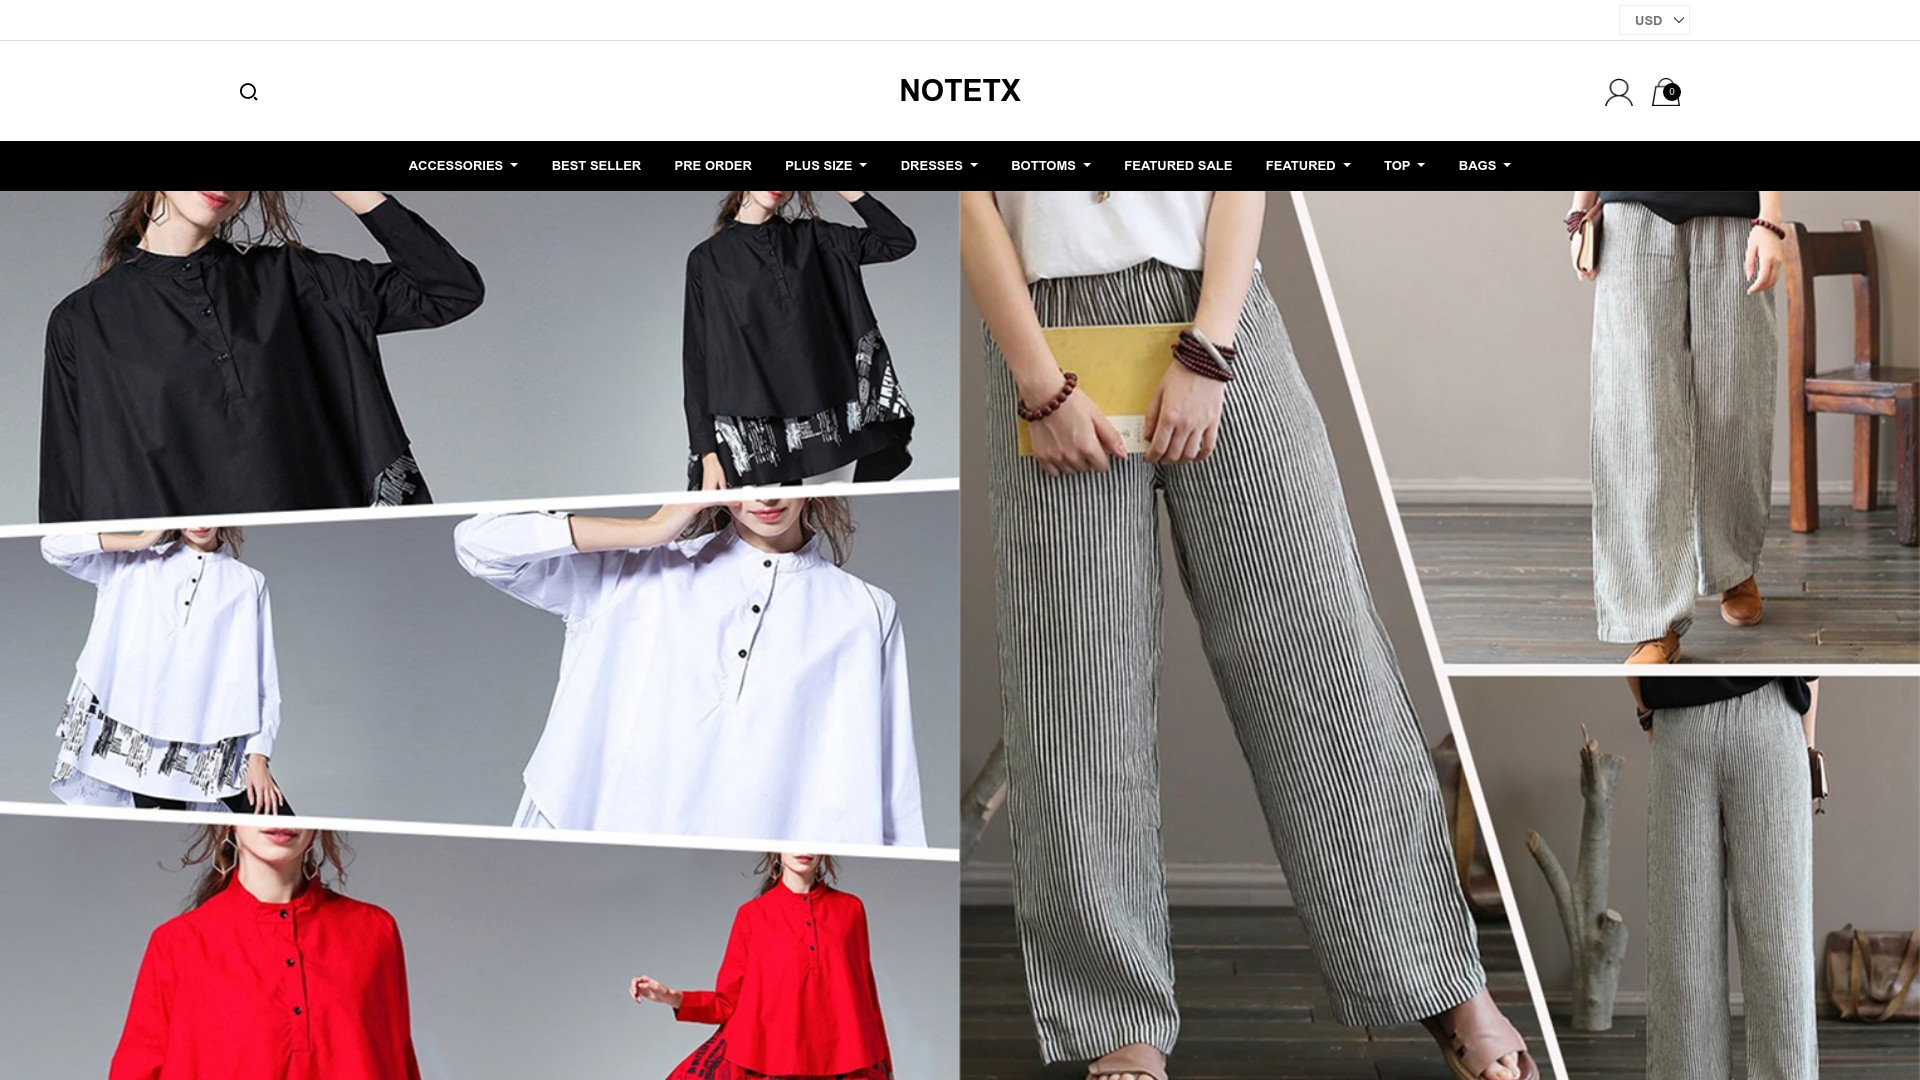 Is Notetx a Scam or is it Legit? Review of the Online Store